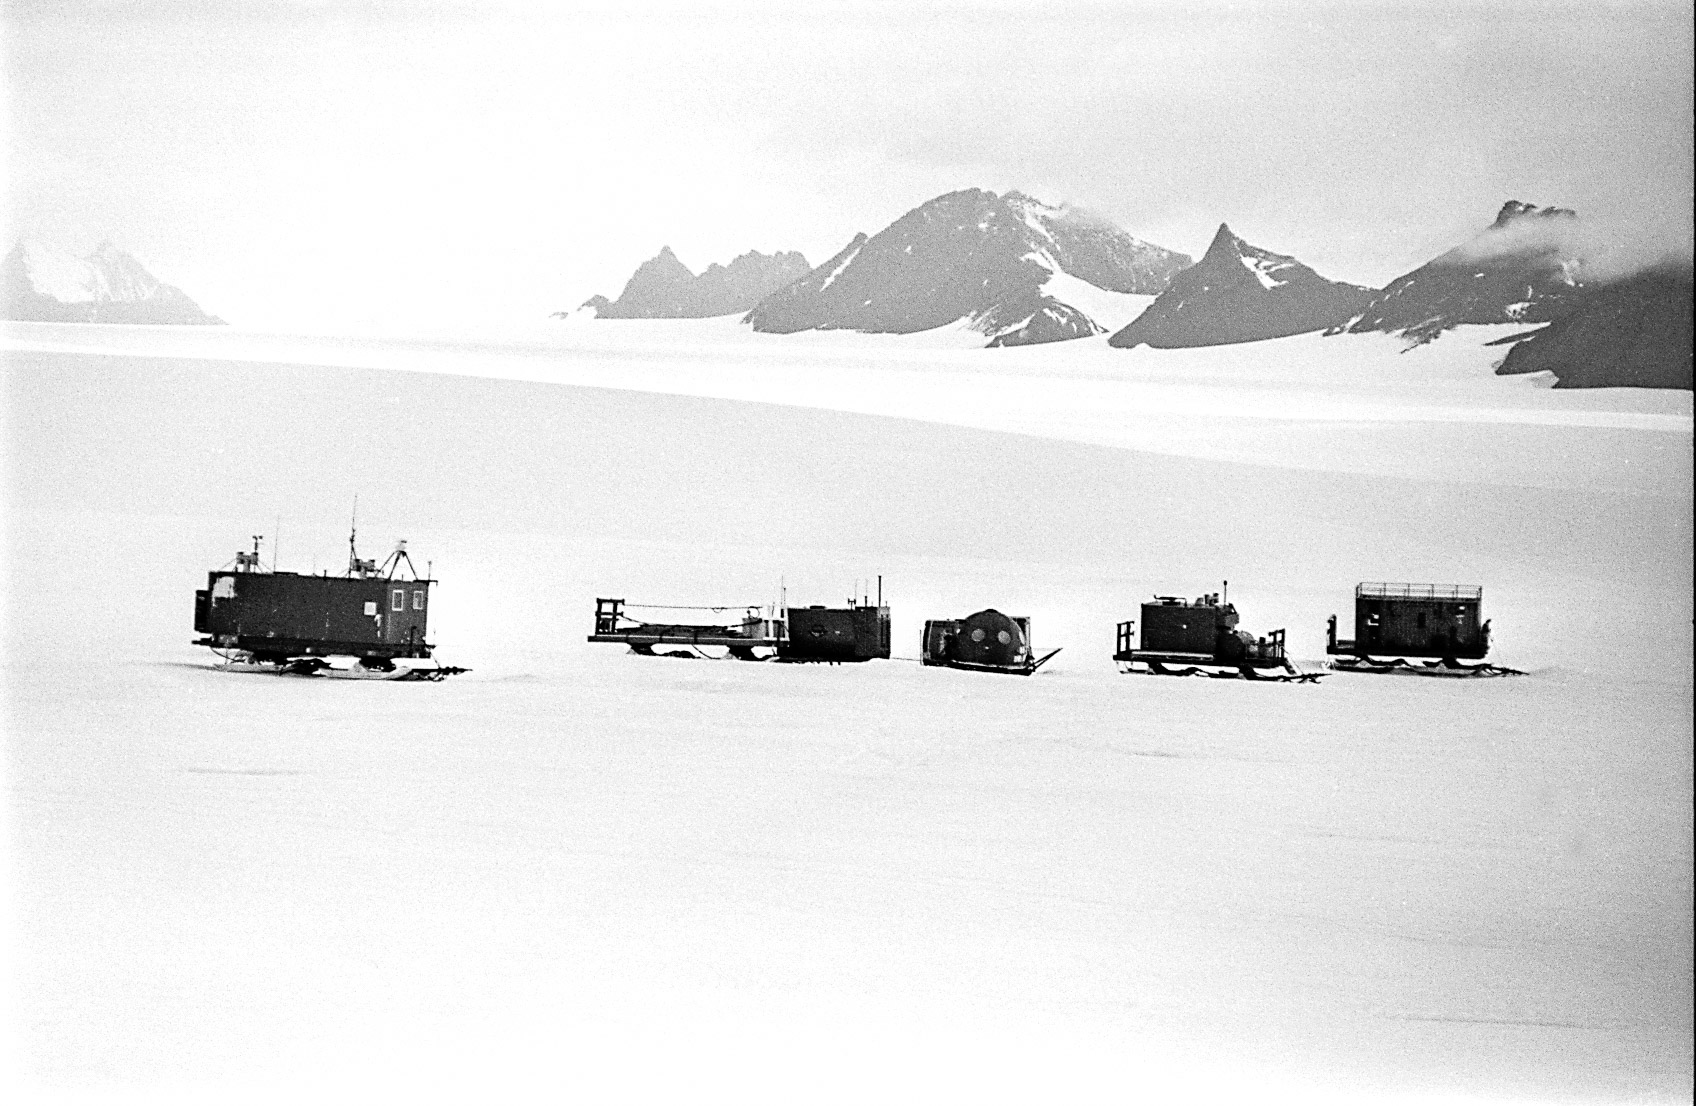 Framnes Mountains, Antarctica. The David Range is clearly visible in the background. © www.thomaspickard.com